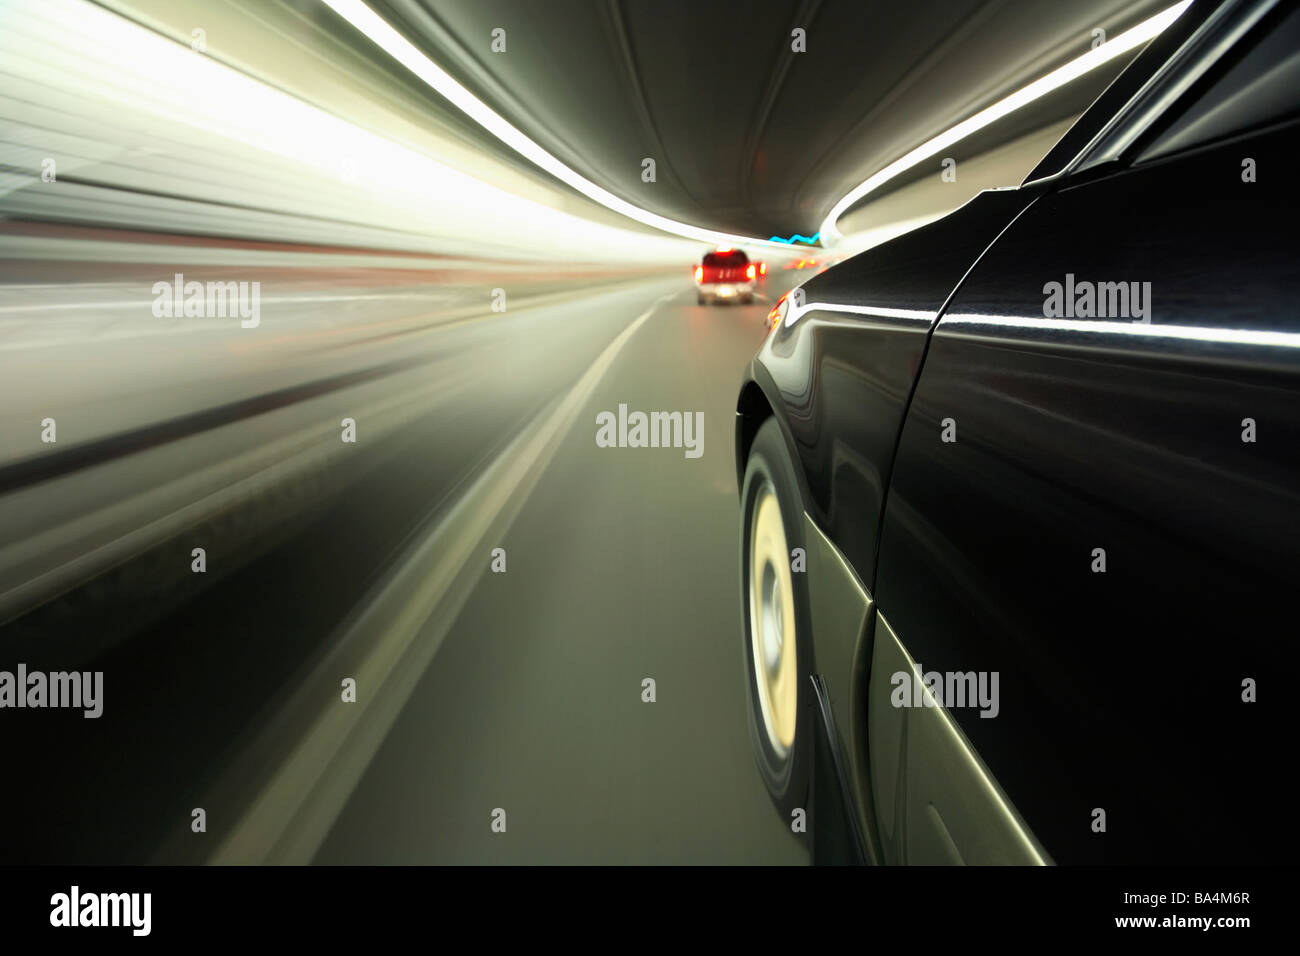 Blurred motion image of cars driving through tunnel - Stock Image